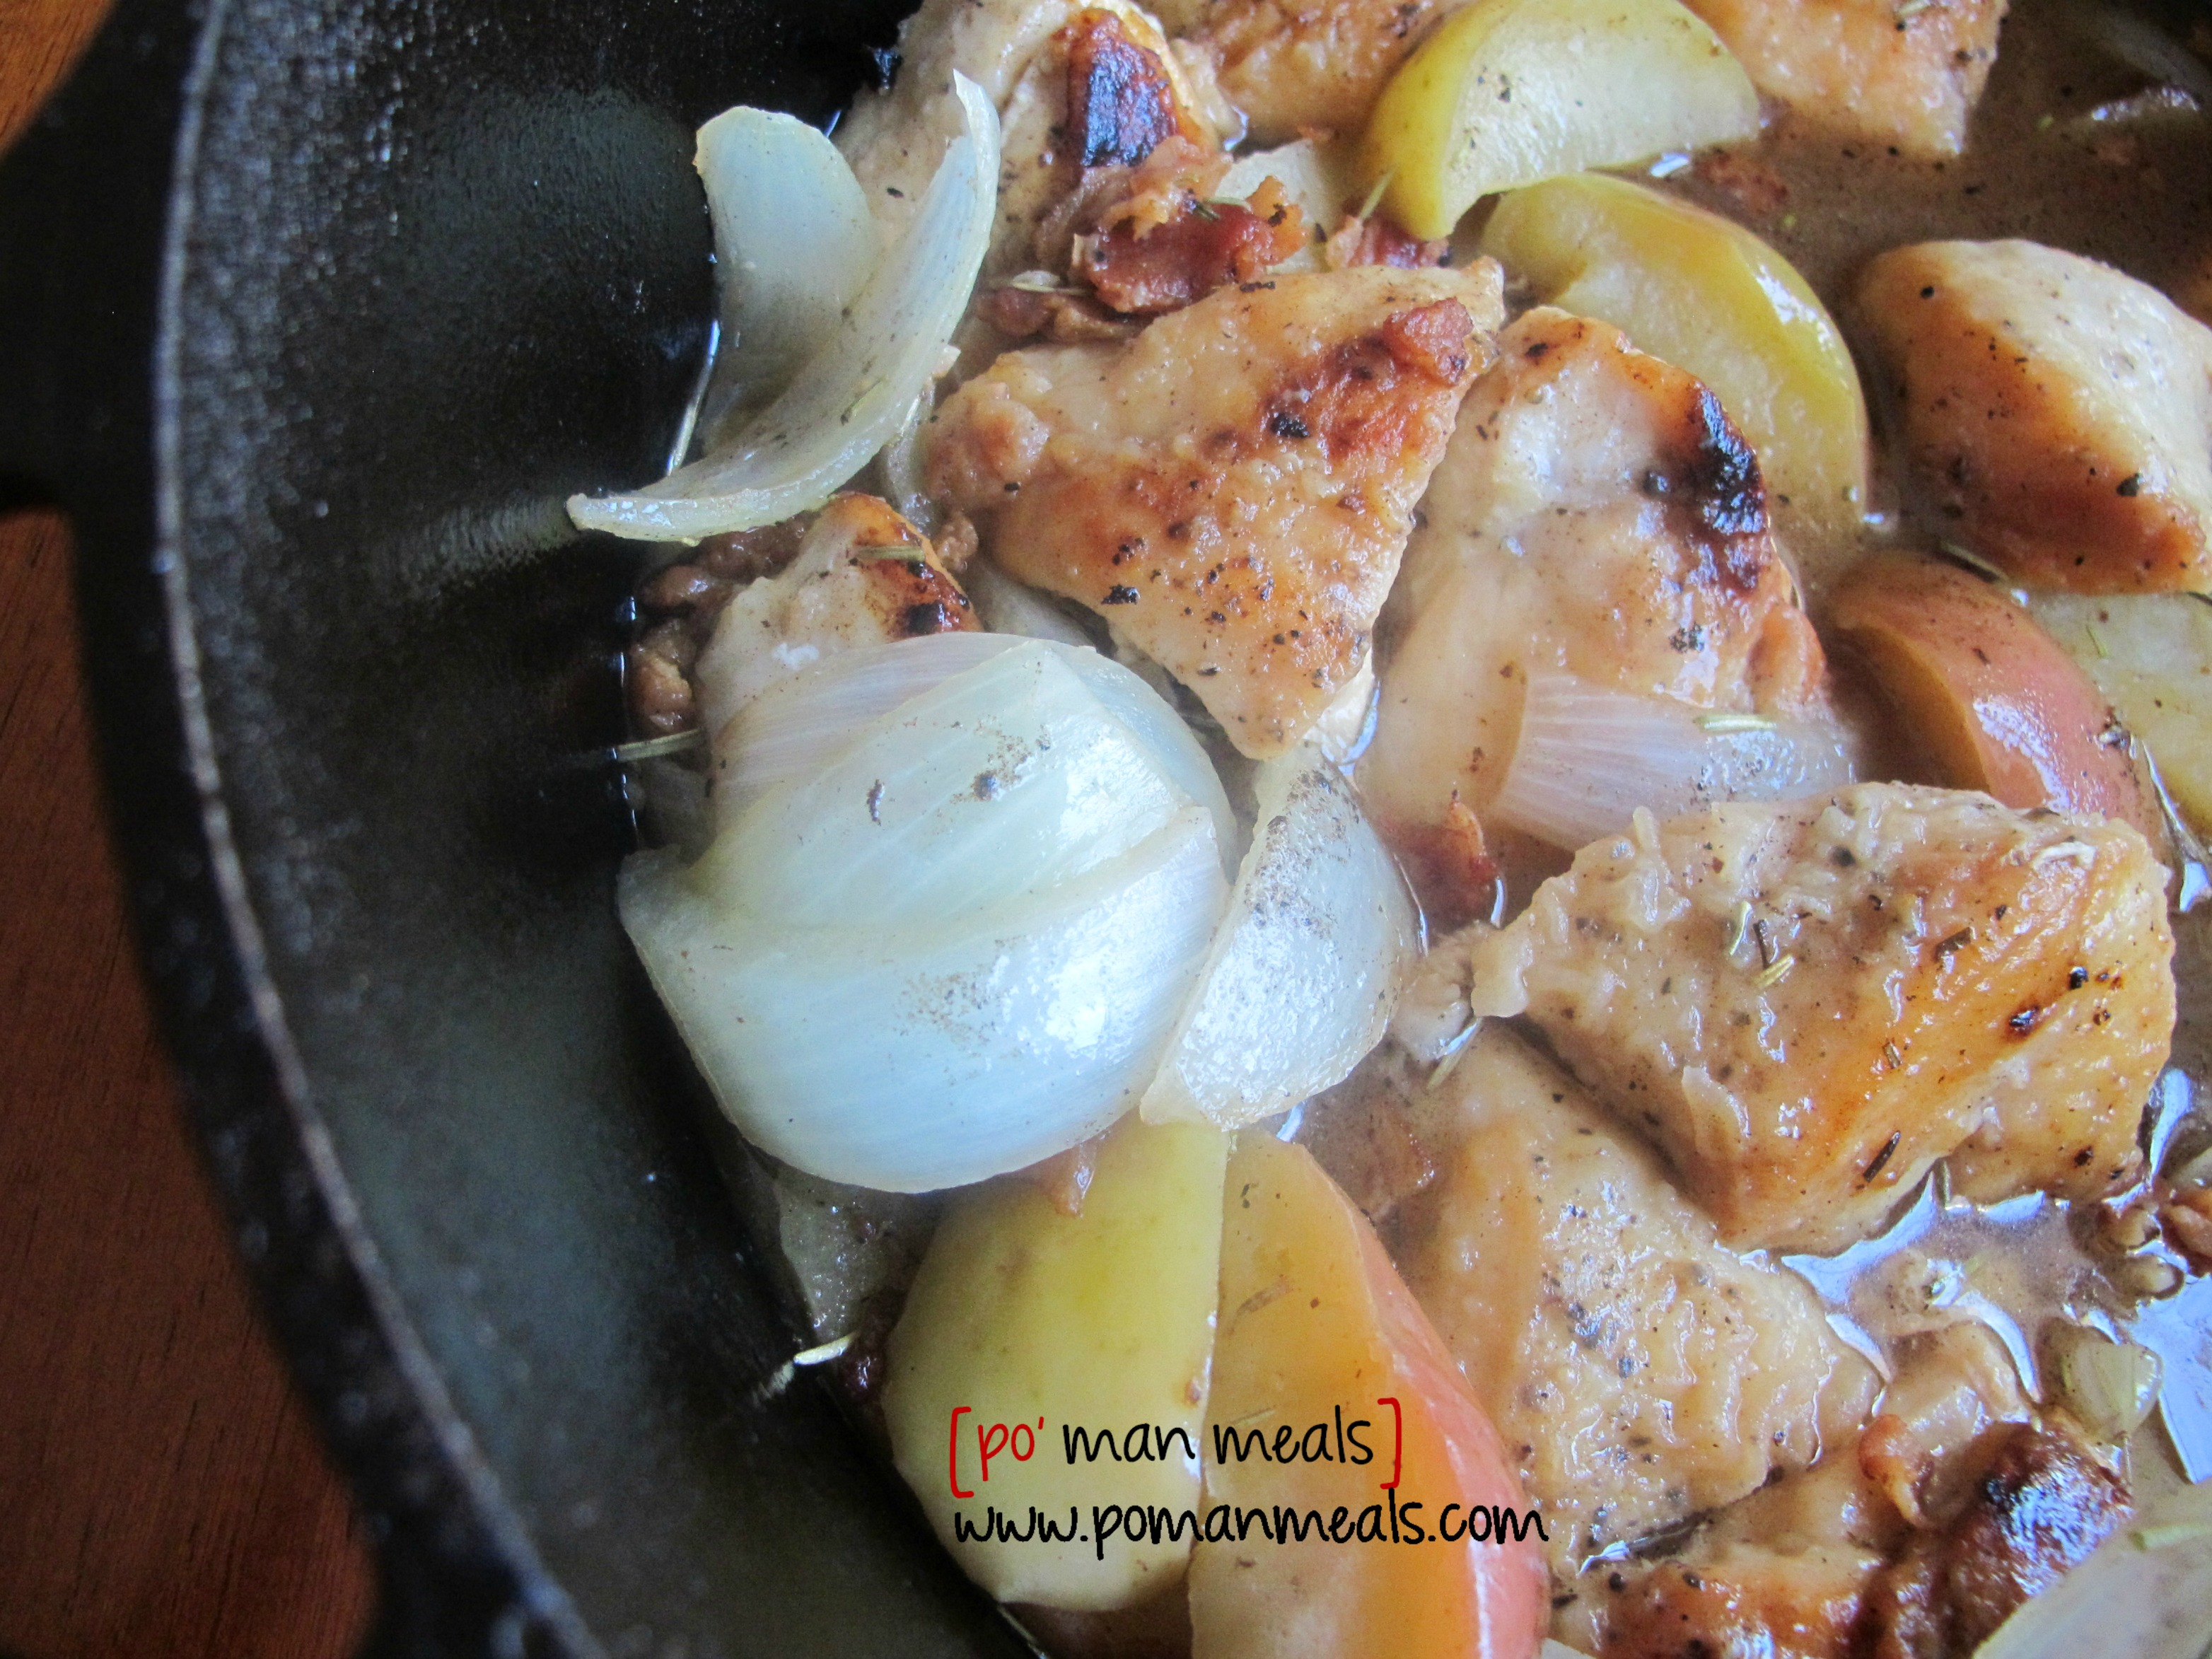 po' man meals - rosemary chicken and apple pot